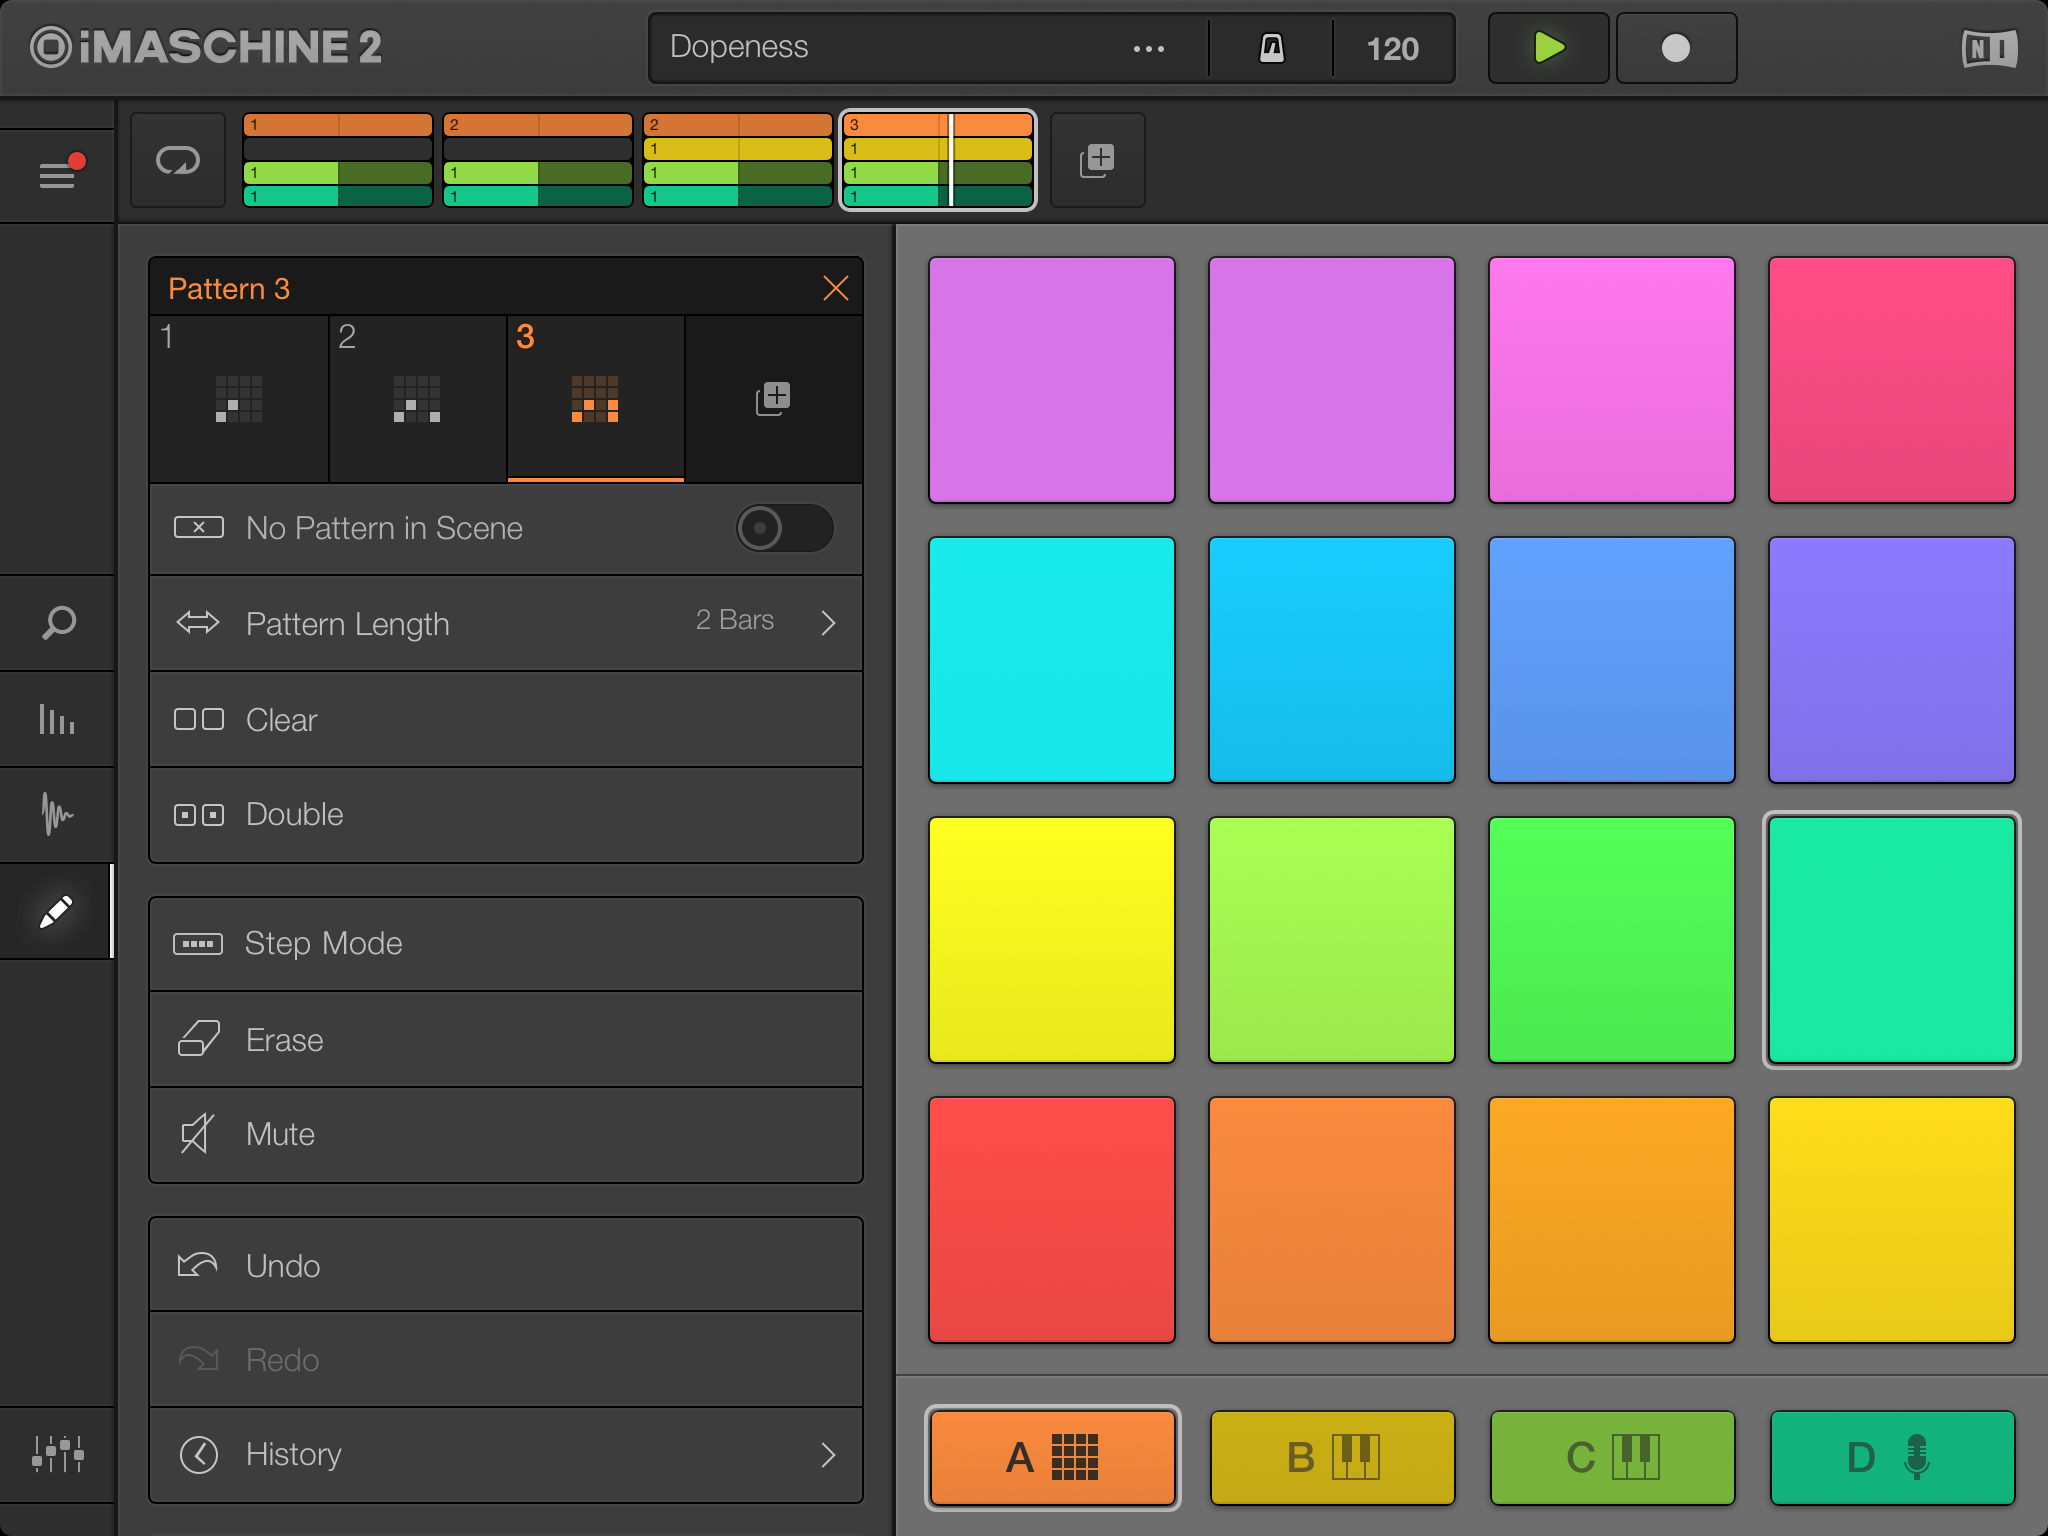 iMaschine 2 adds steps, arrangement, chords to mobile drum